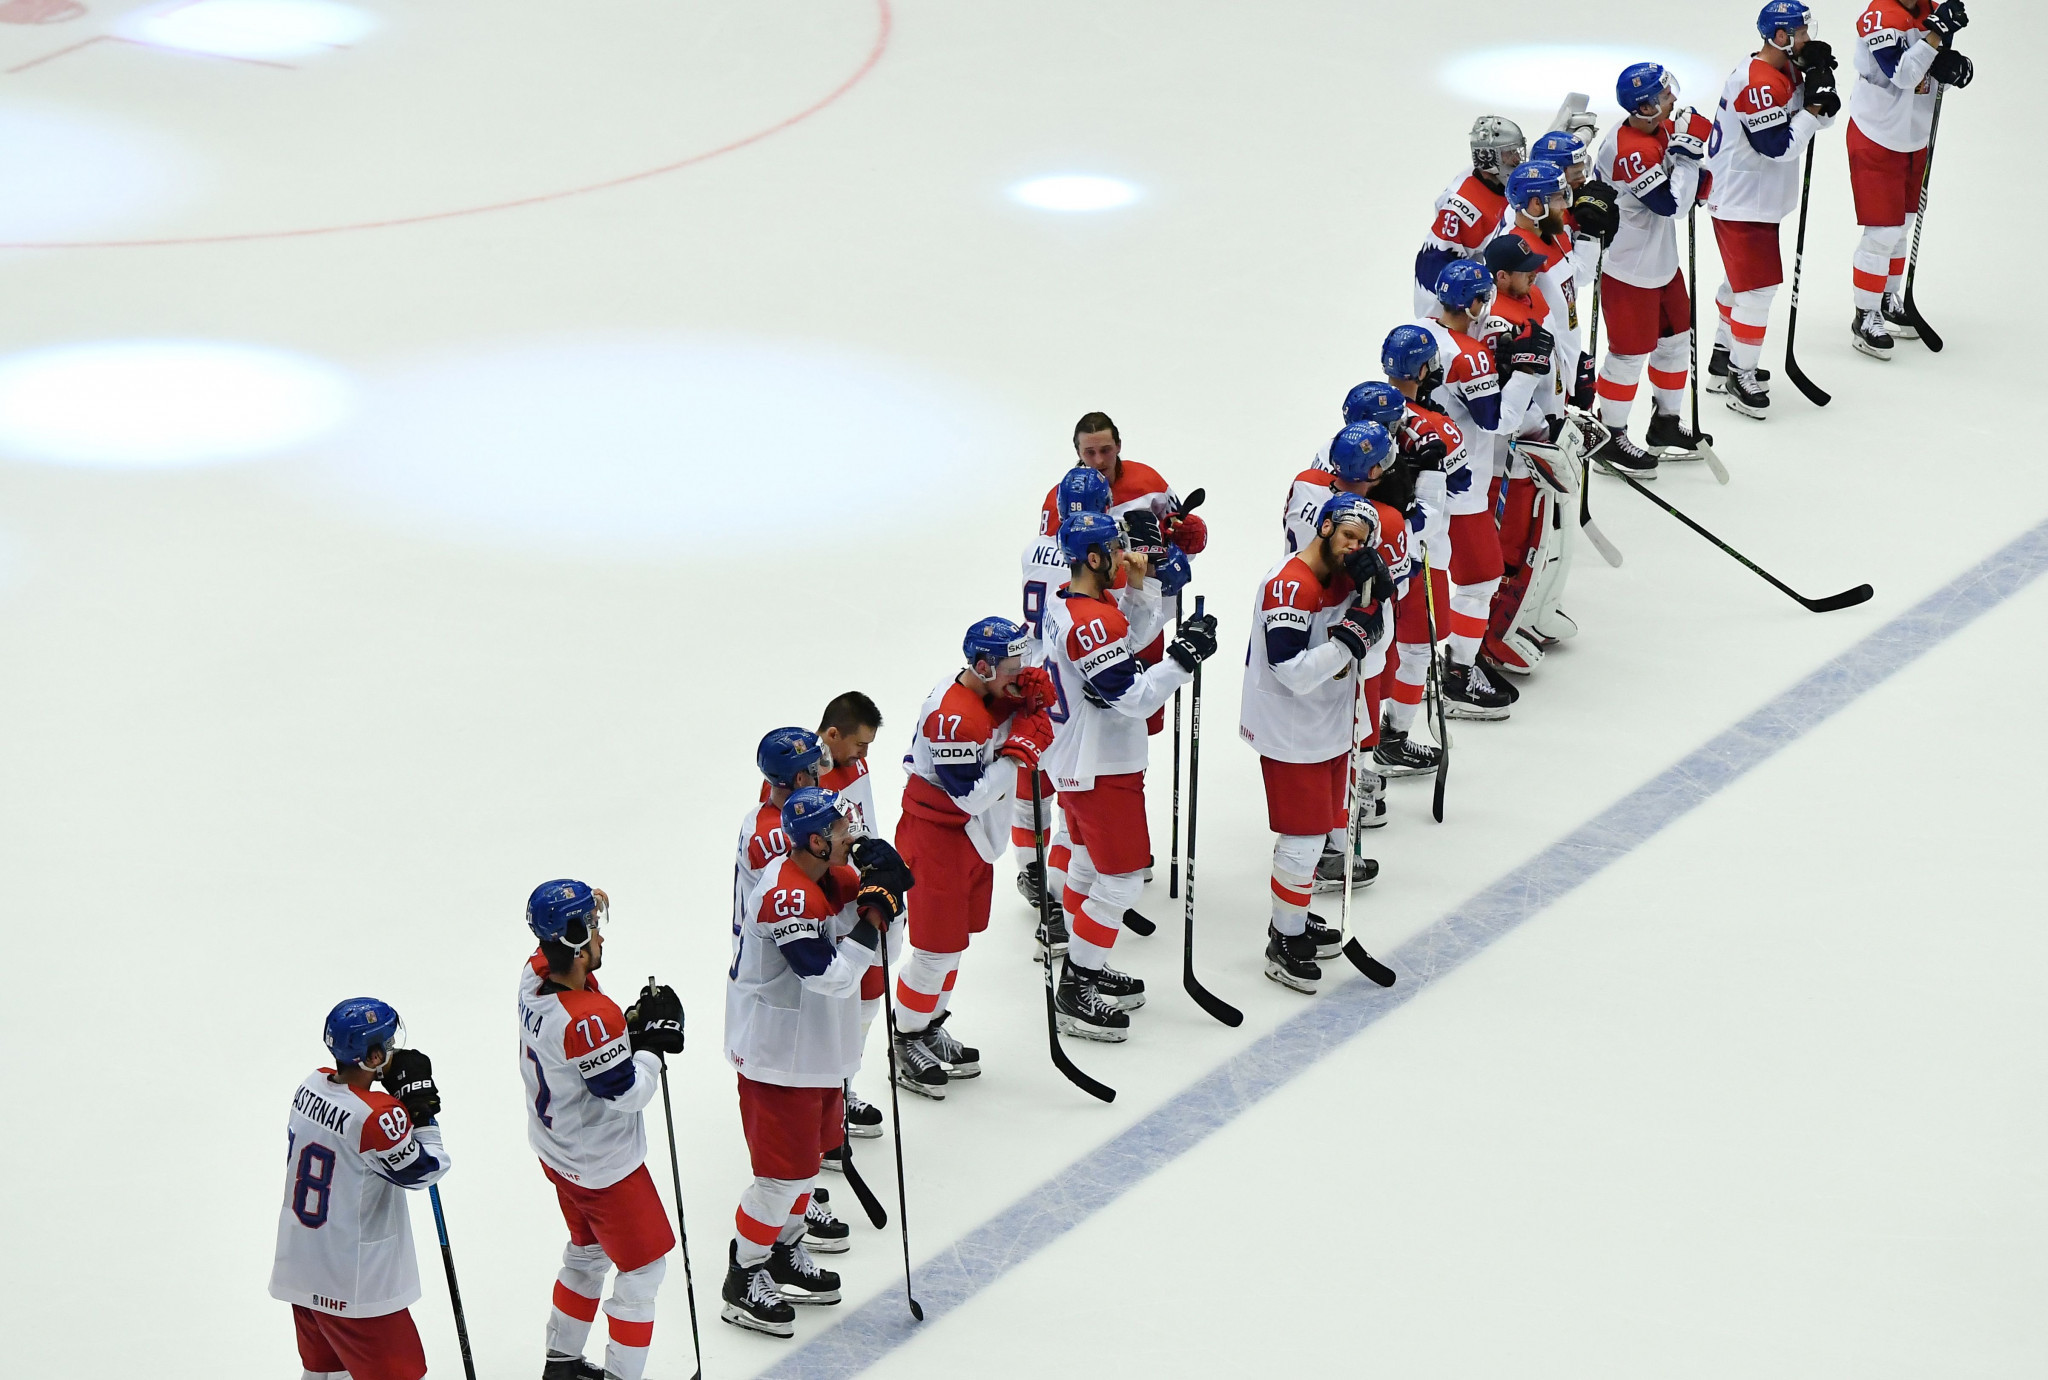 The Czech team reached the quarter finals at the World Championships in Denmark last month  ©Getty Images